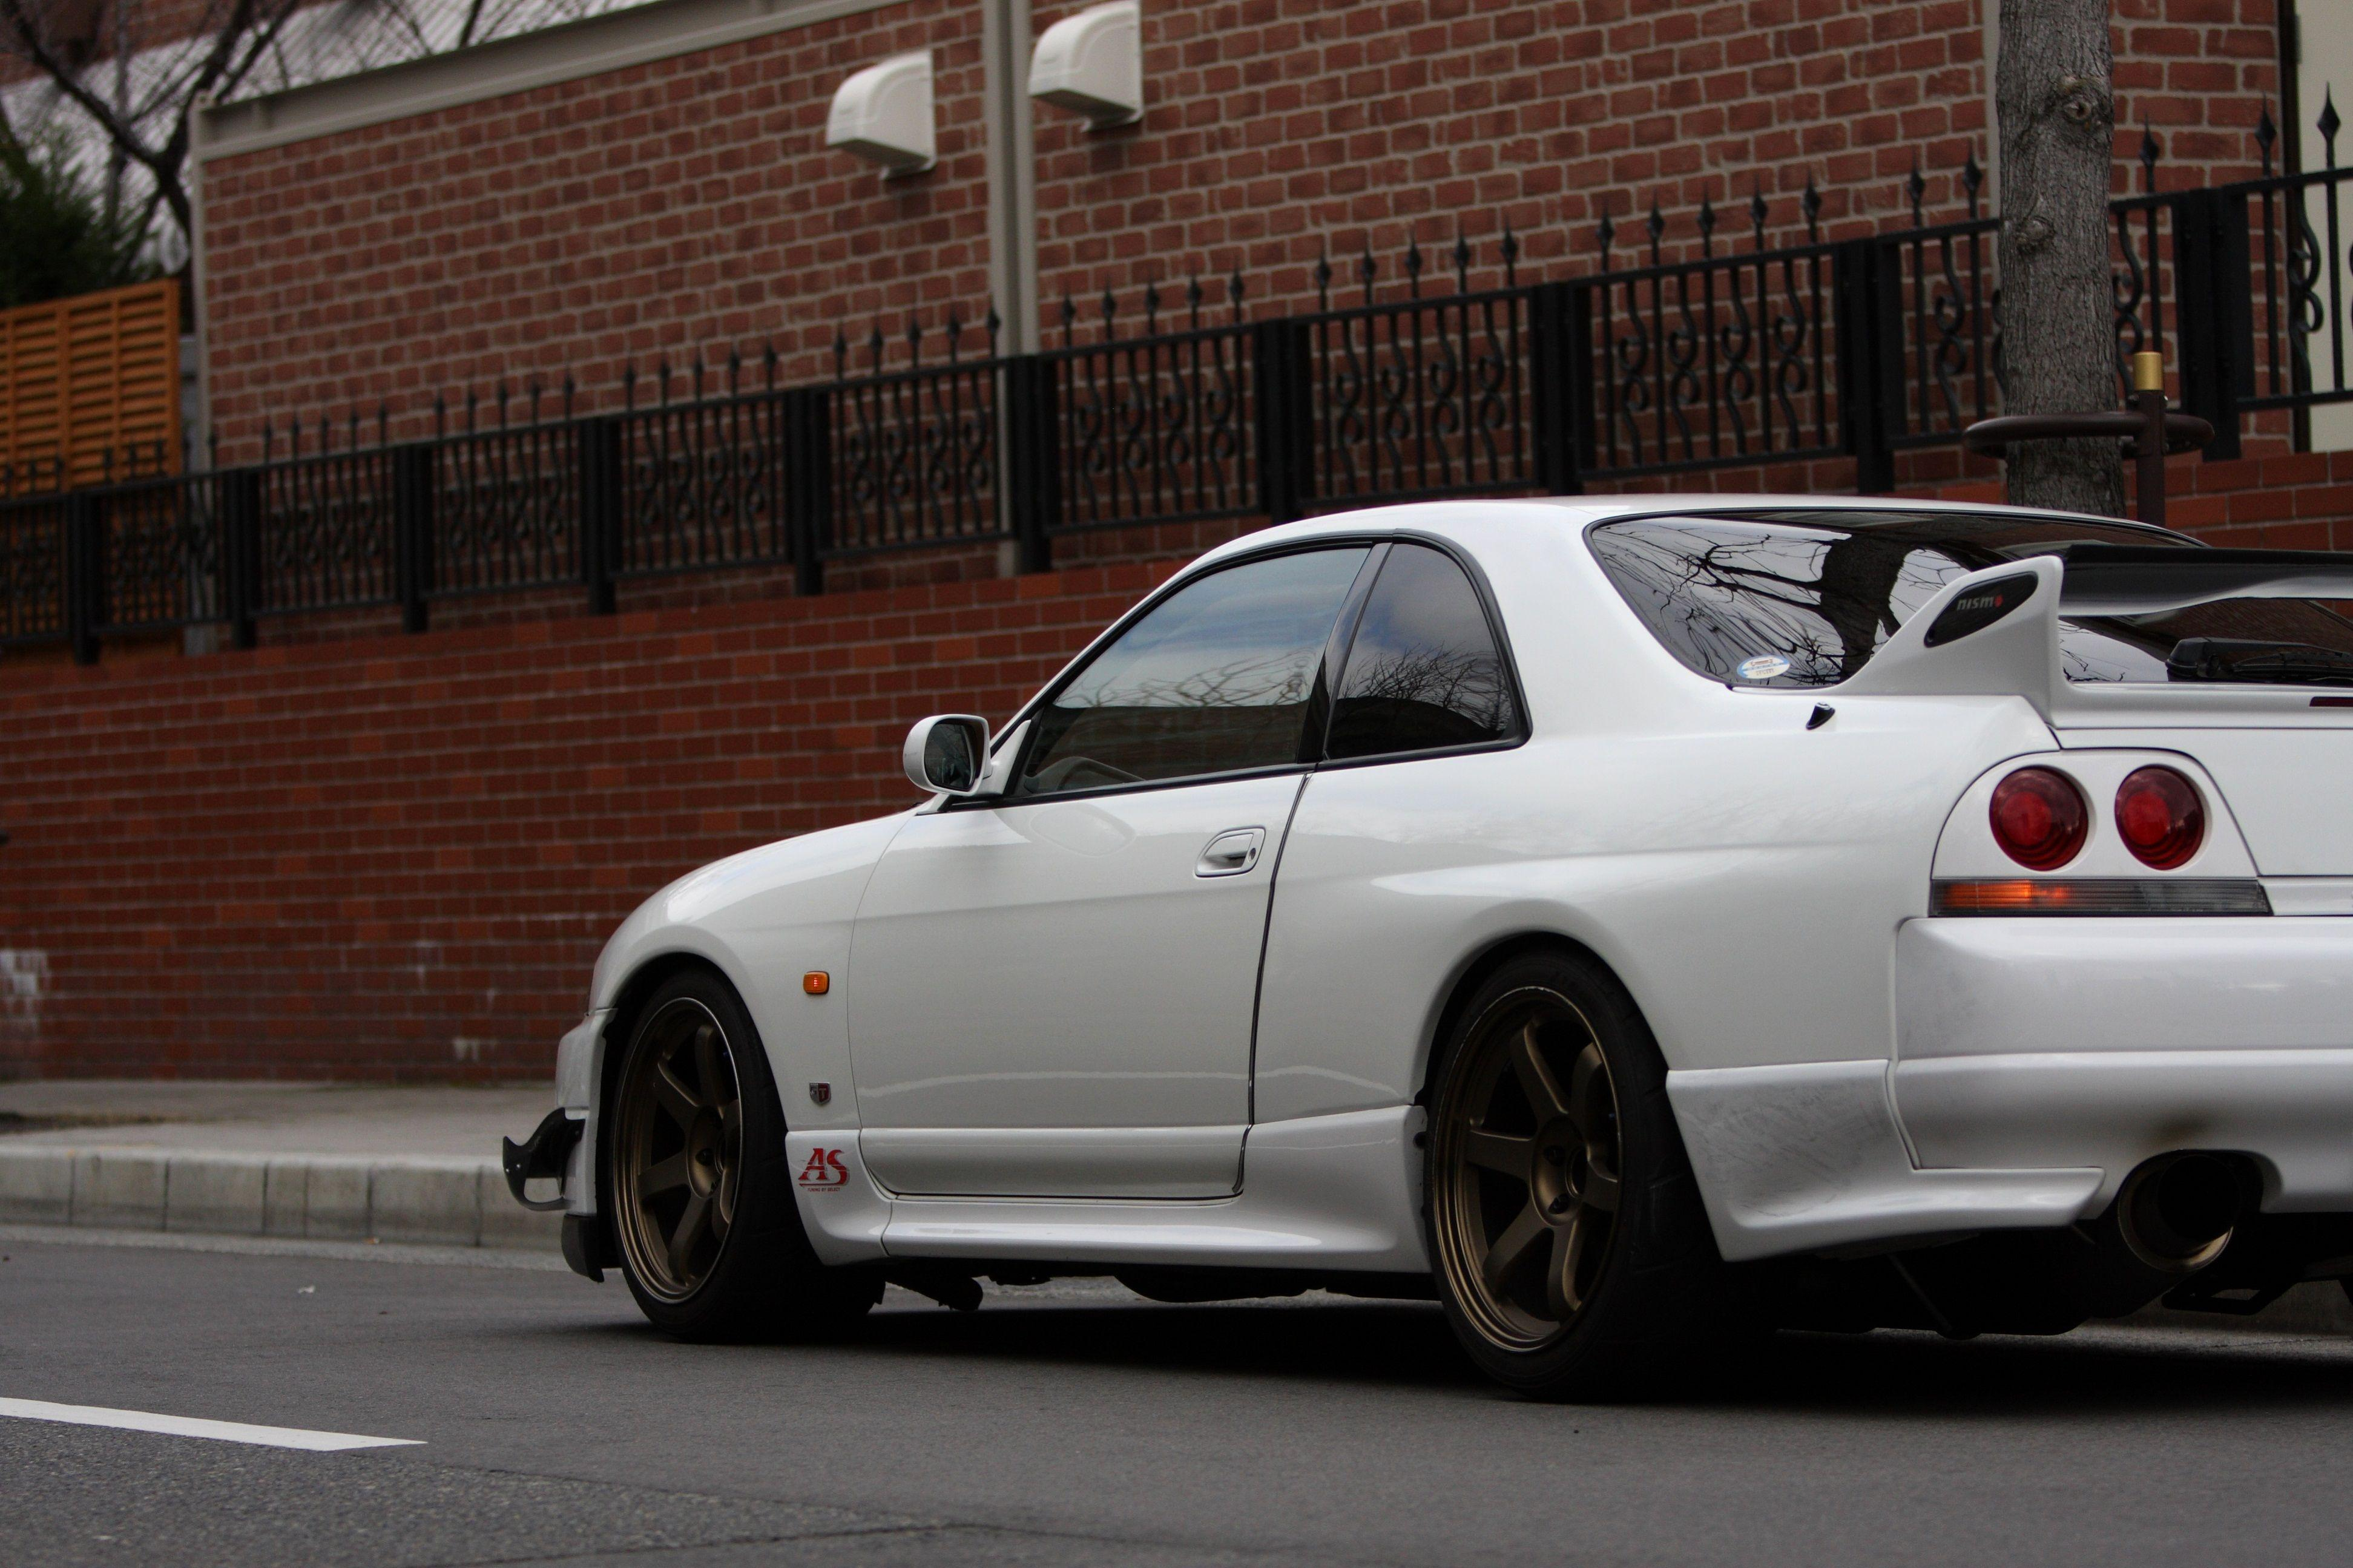 Nissan skyline gtr r33 wallpapers wallpaper cave - Nissan skyline background ...